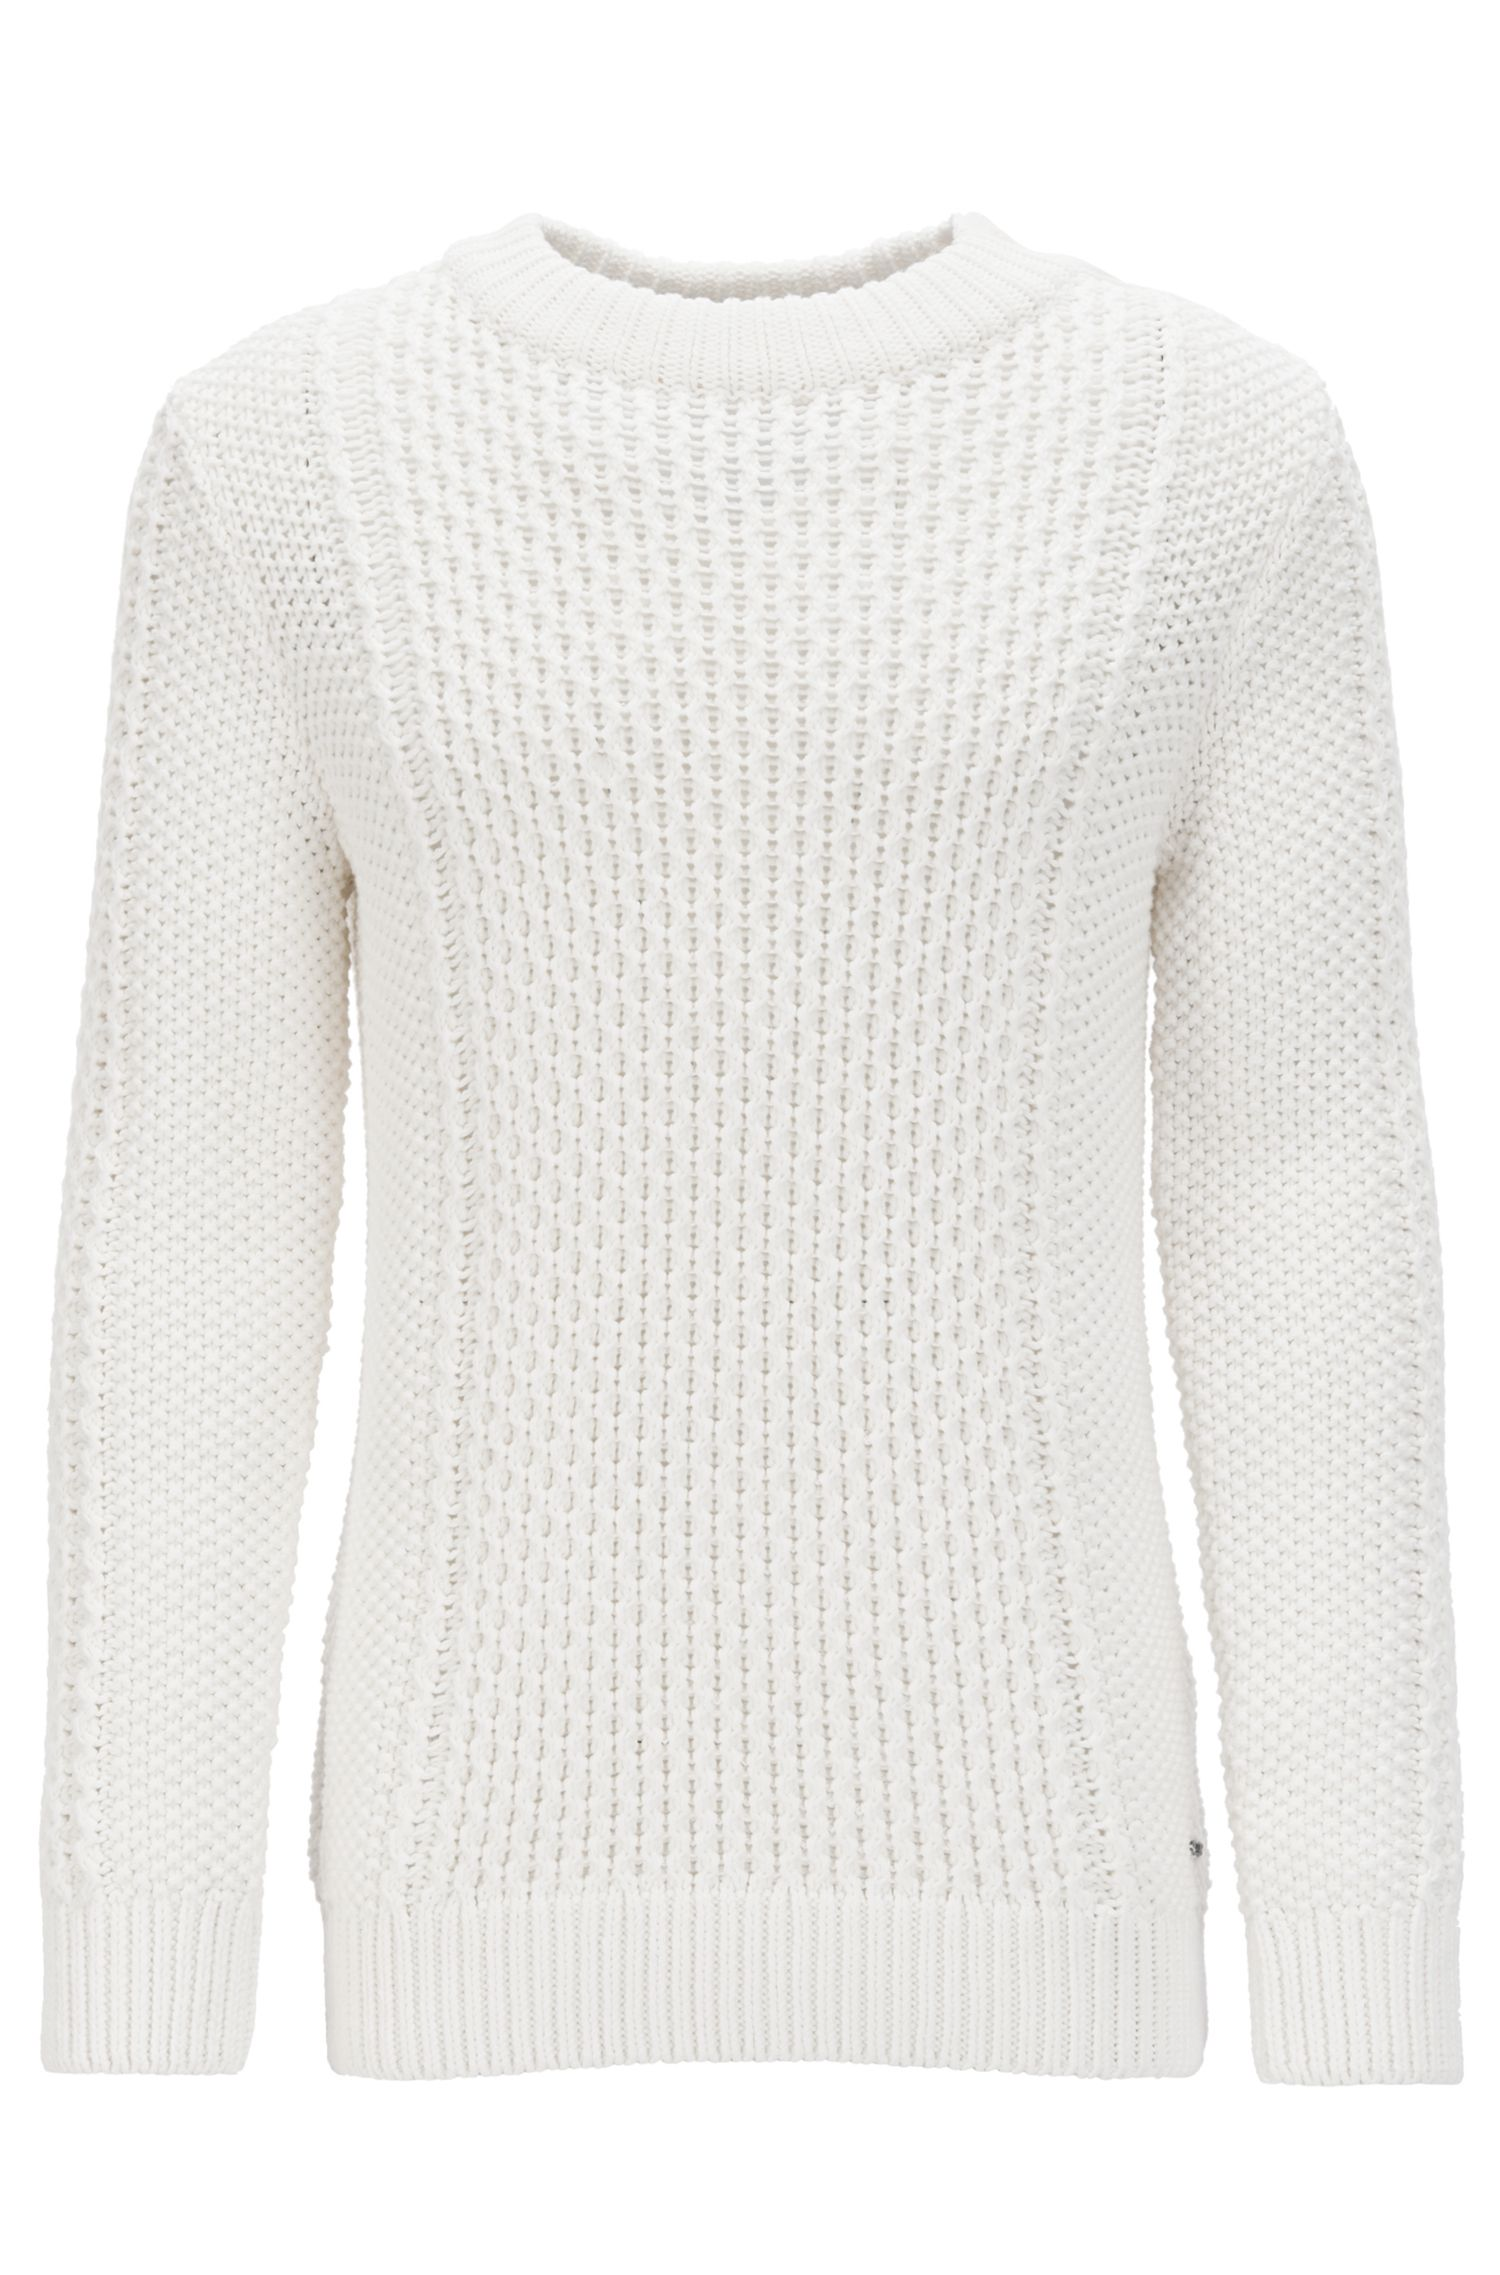 Cotton-blend cable-knit sweater with buttons